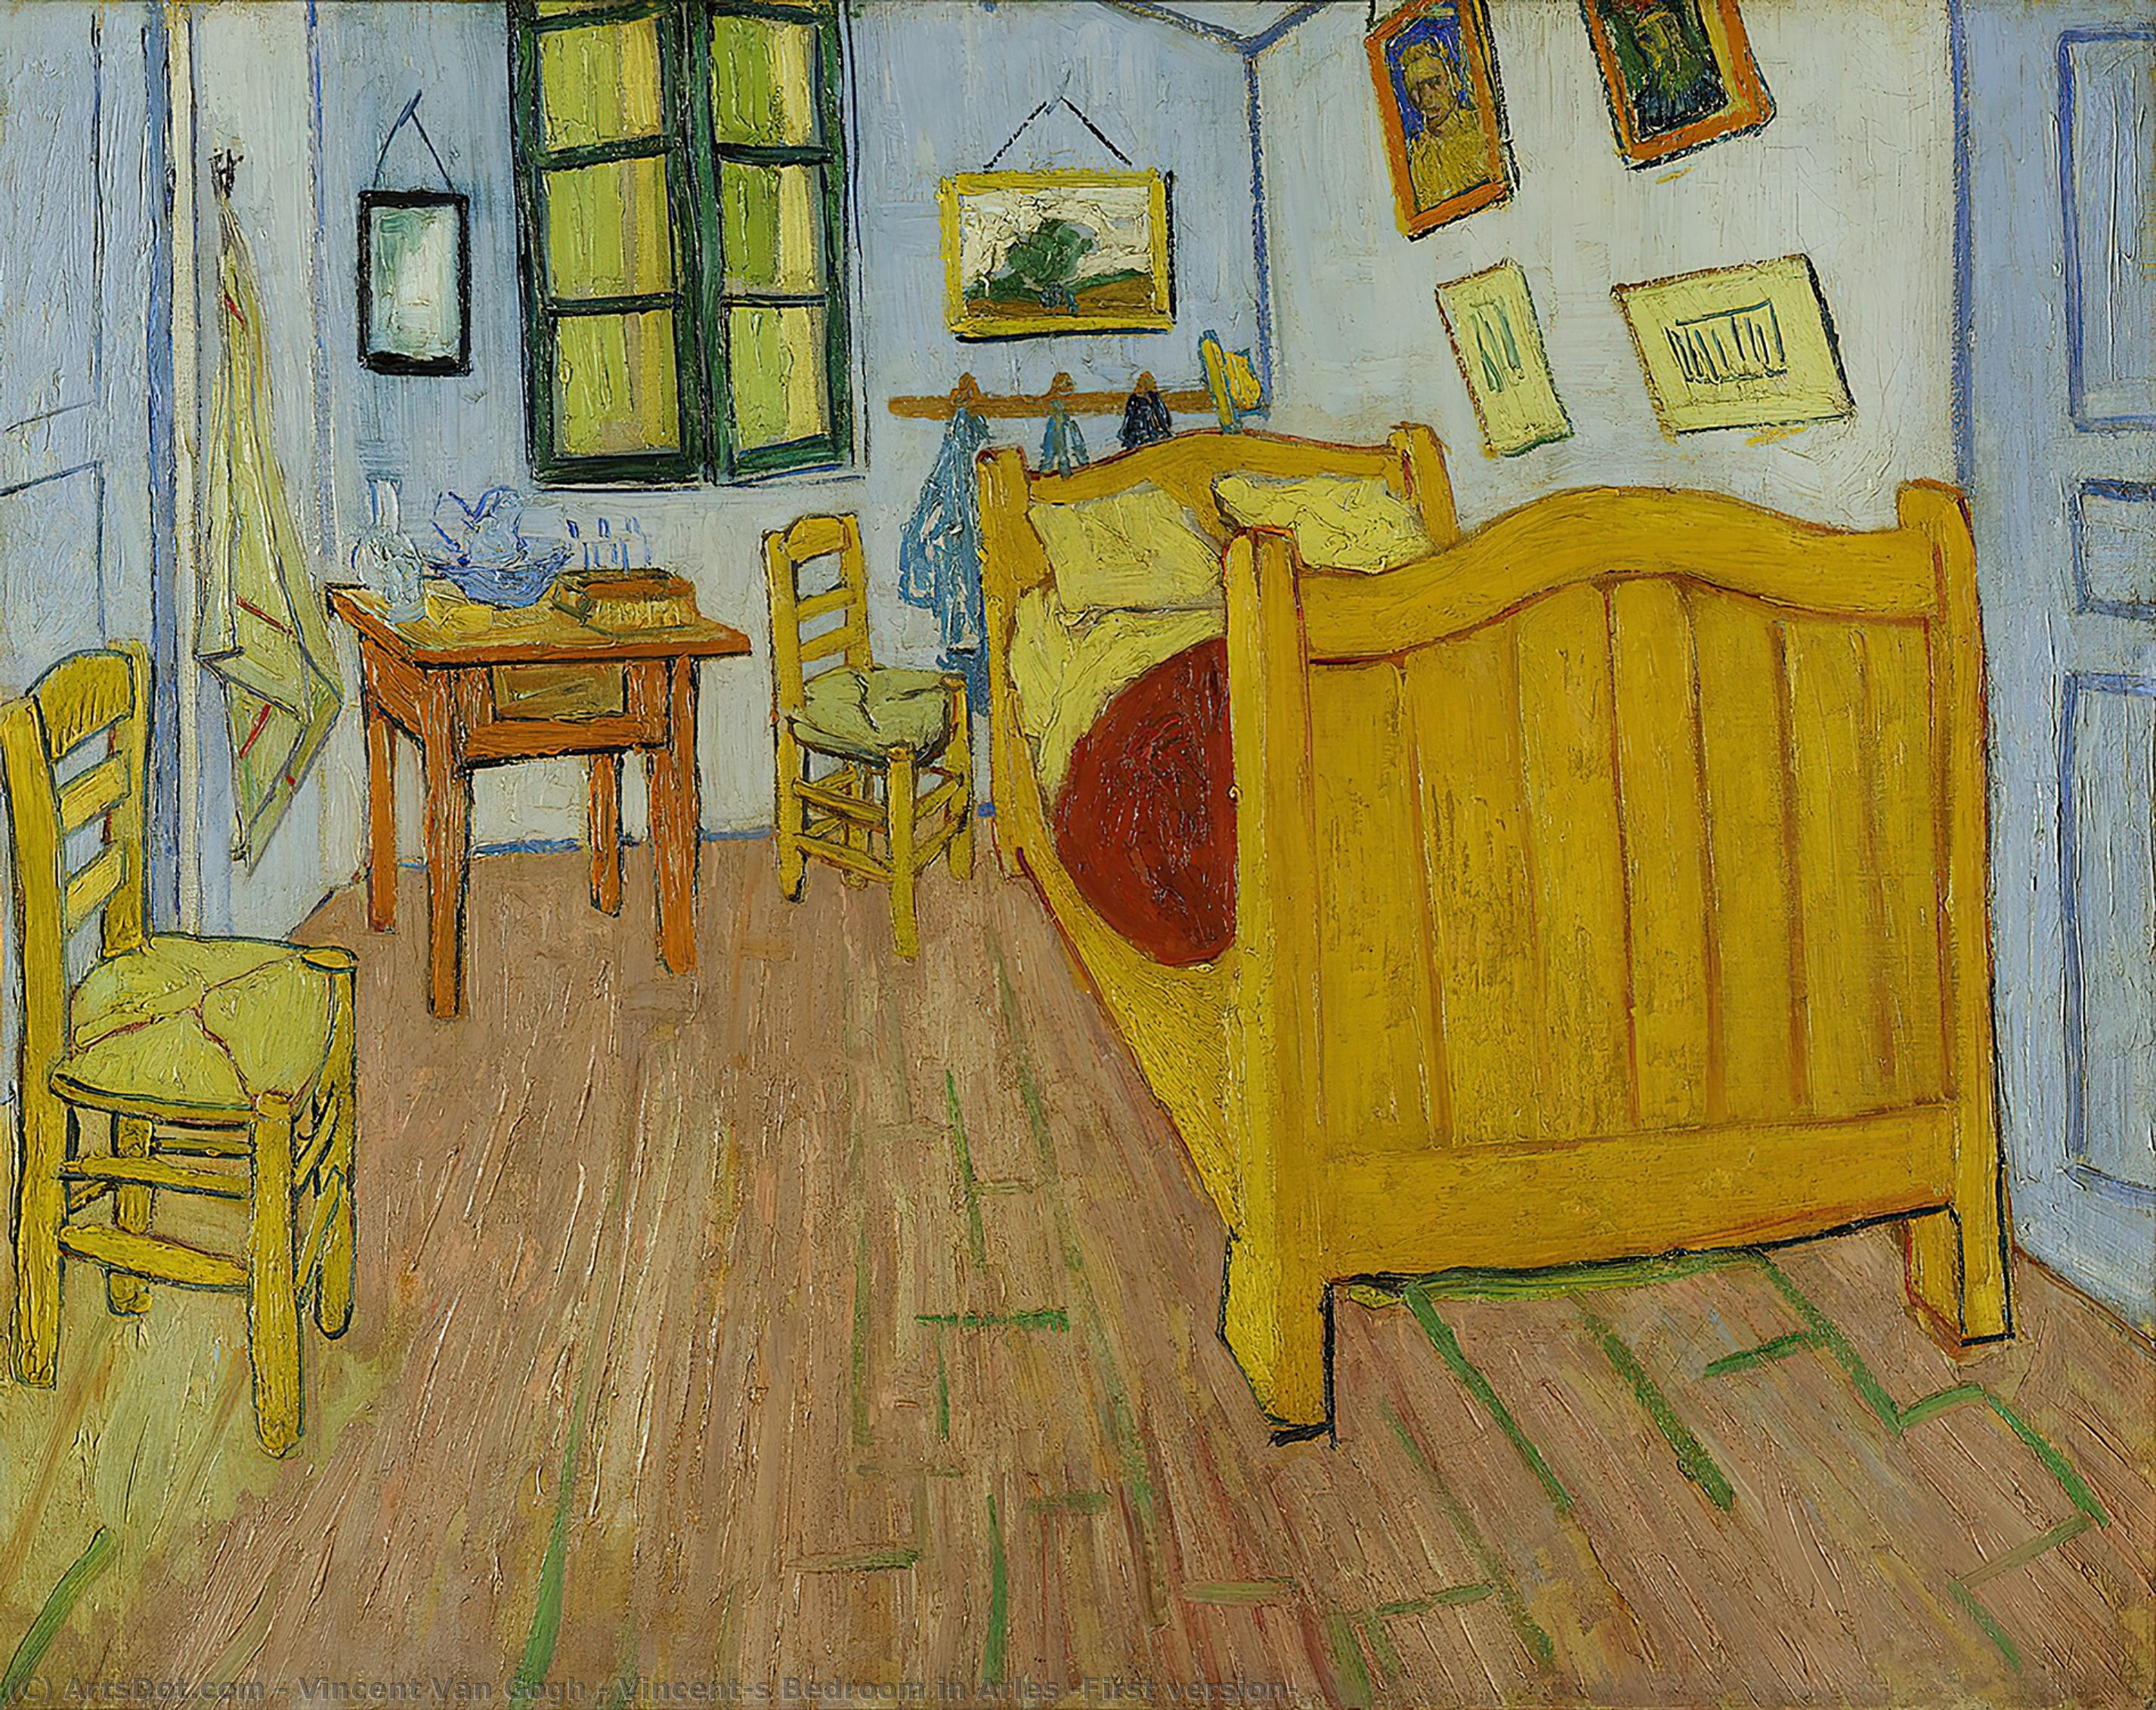 Wikioo.org - The Encyclopedia of Fine Arts - Painting, Artwork by Vincent Van Gogh - Vincent's Bedroom in Arles (First version)